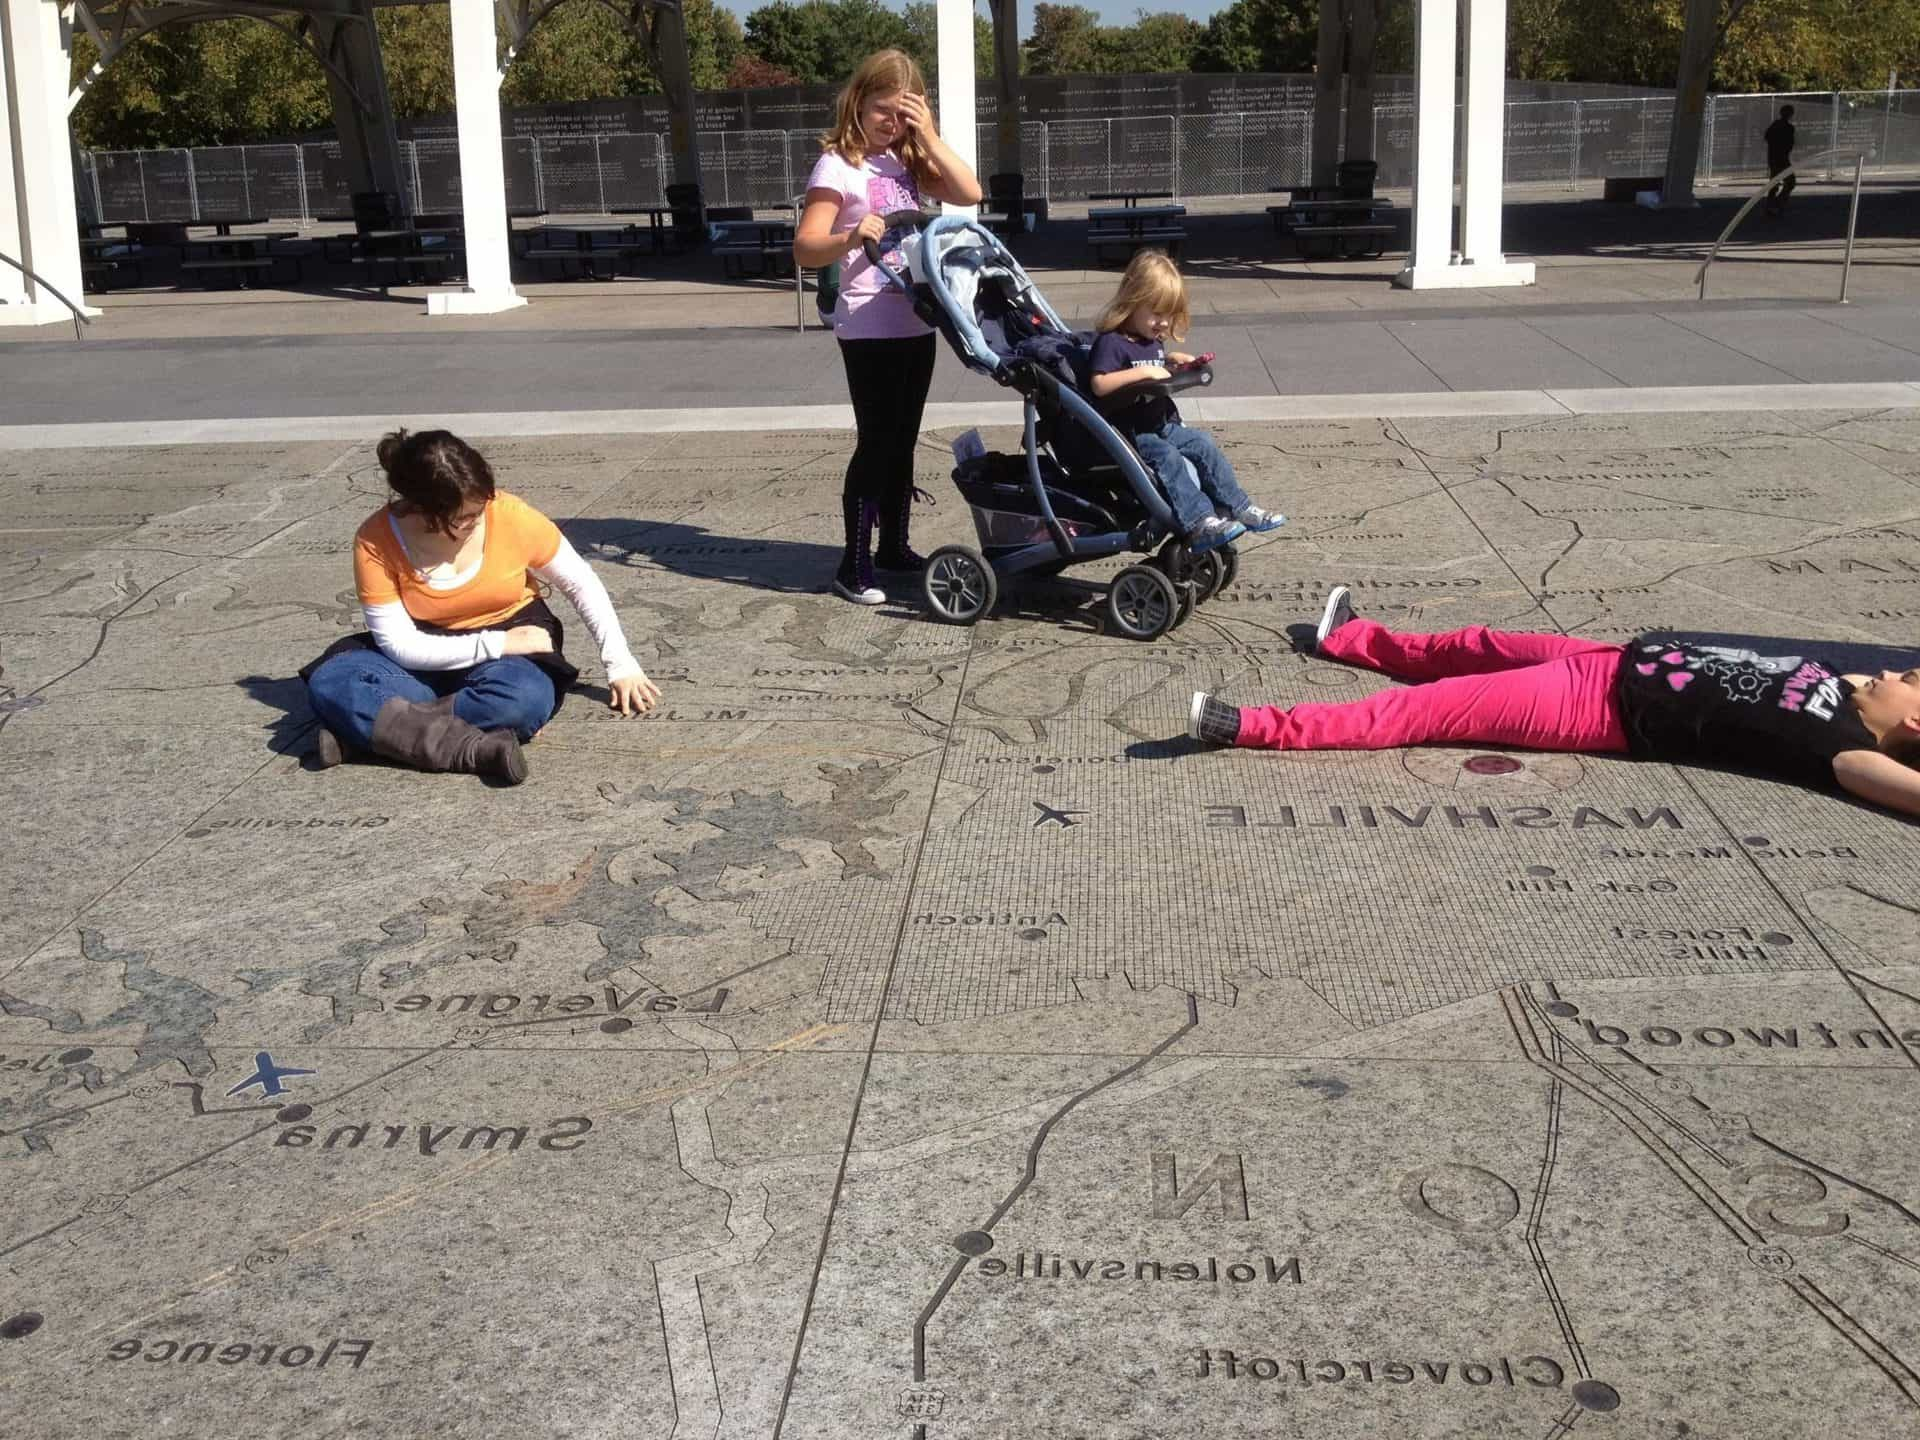 Finding cities on the giant Tennessee state map